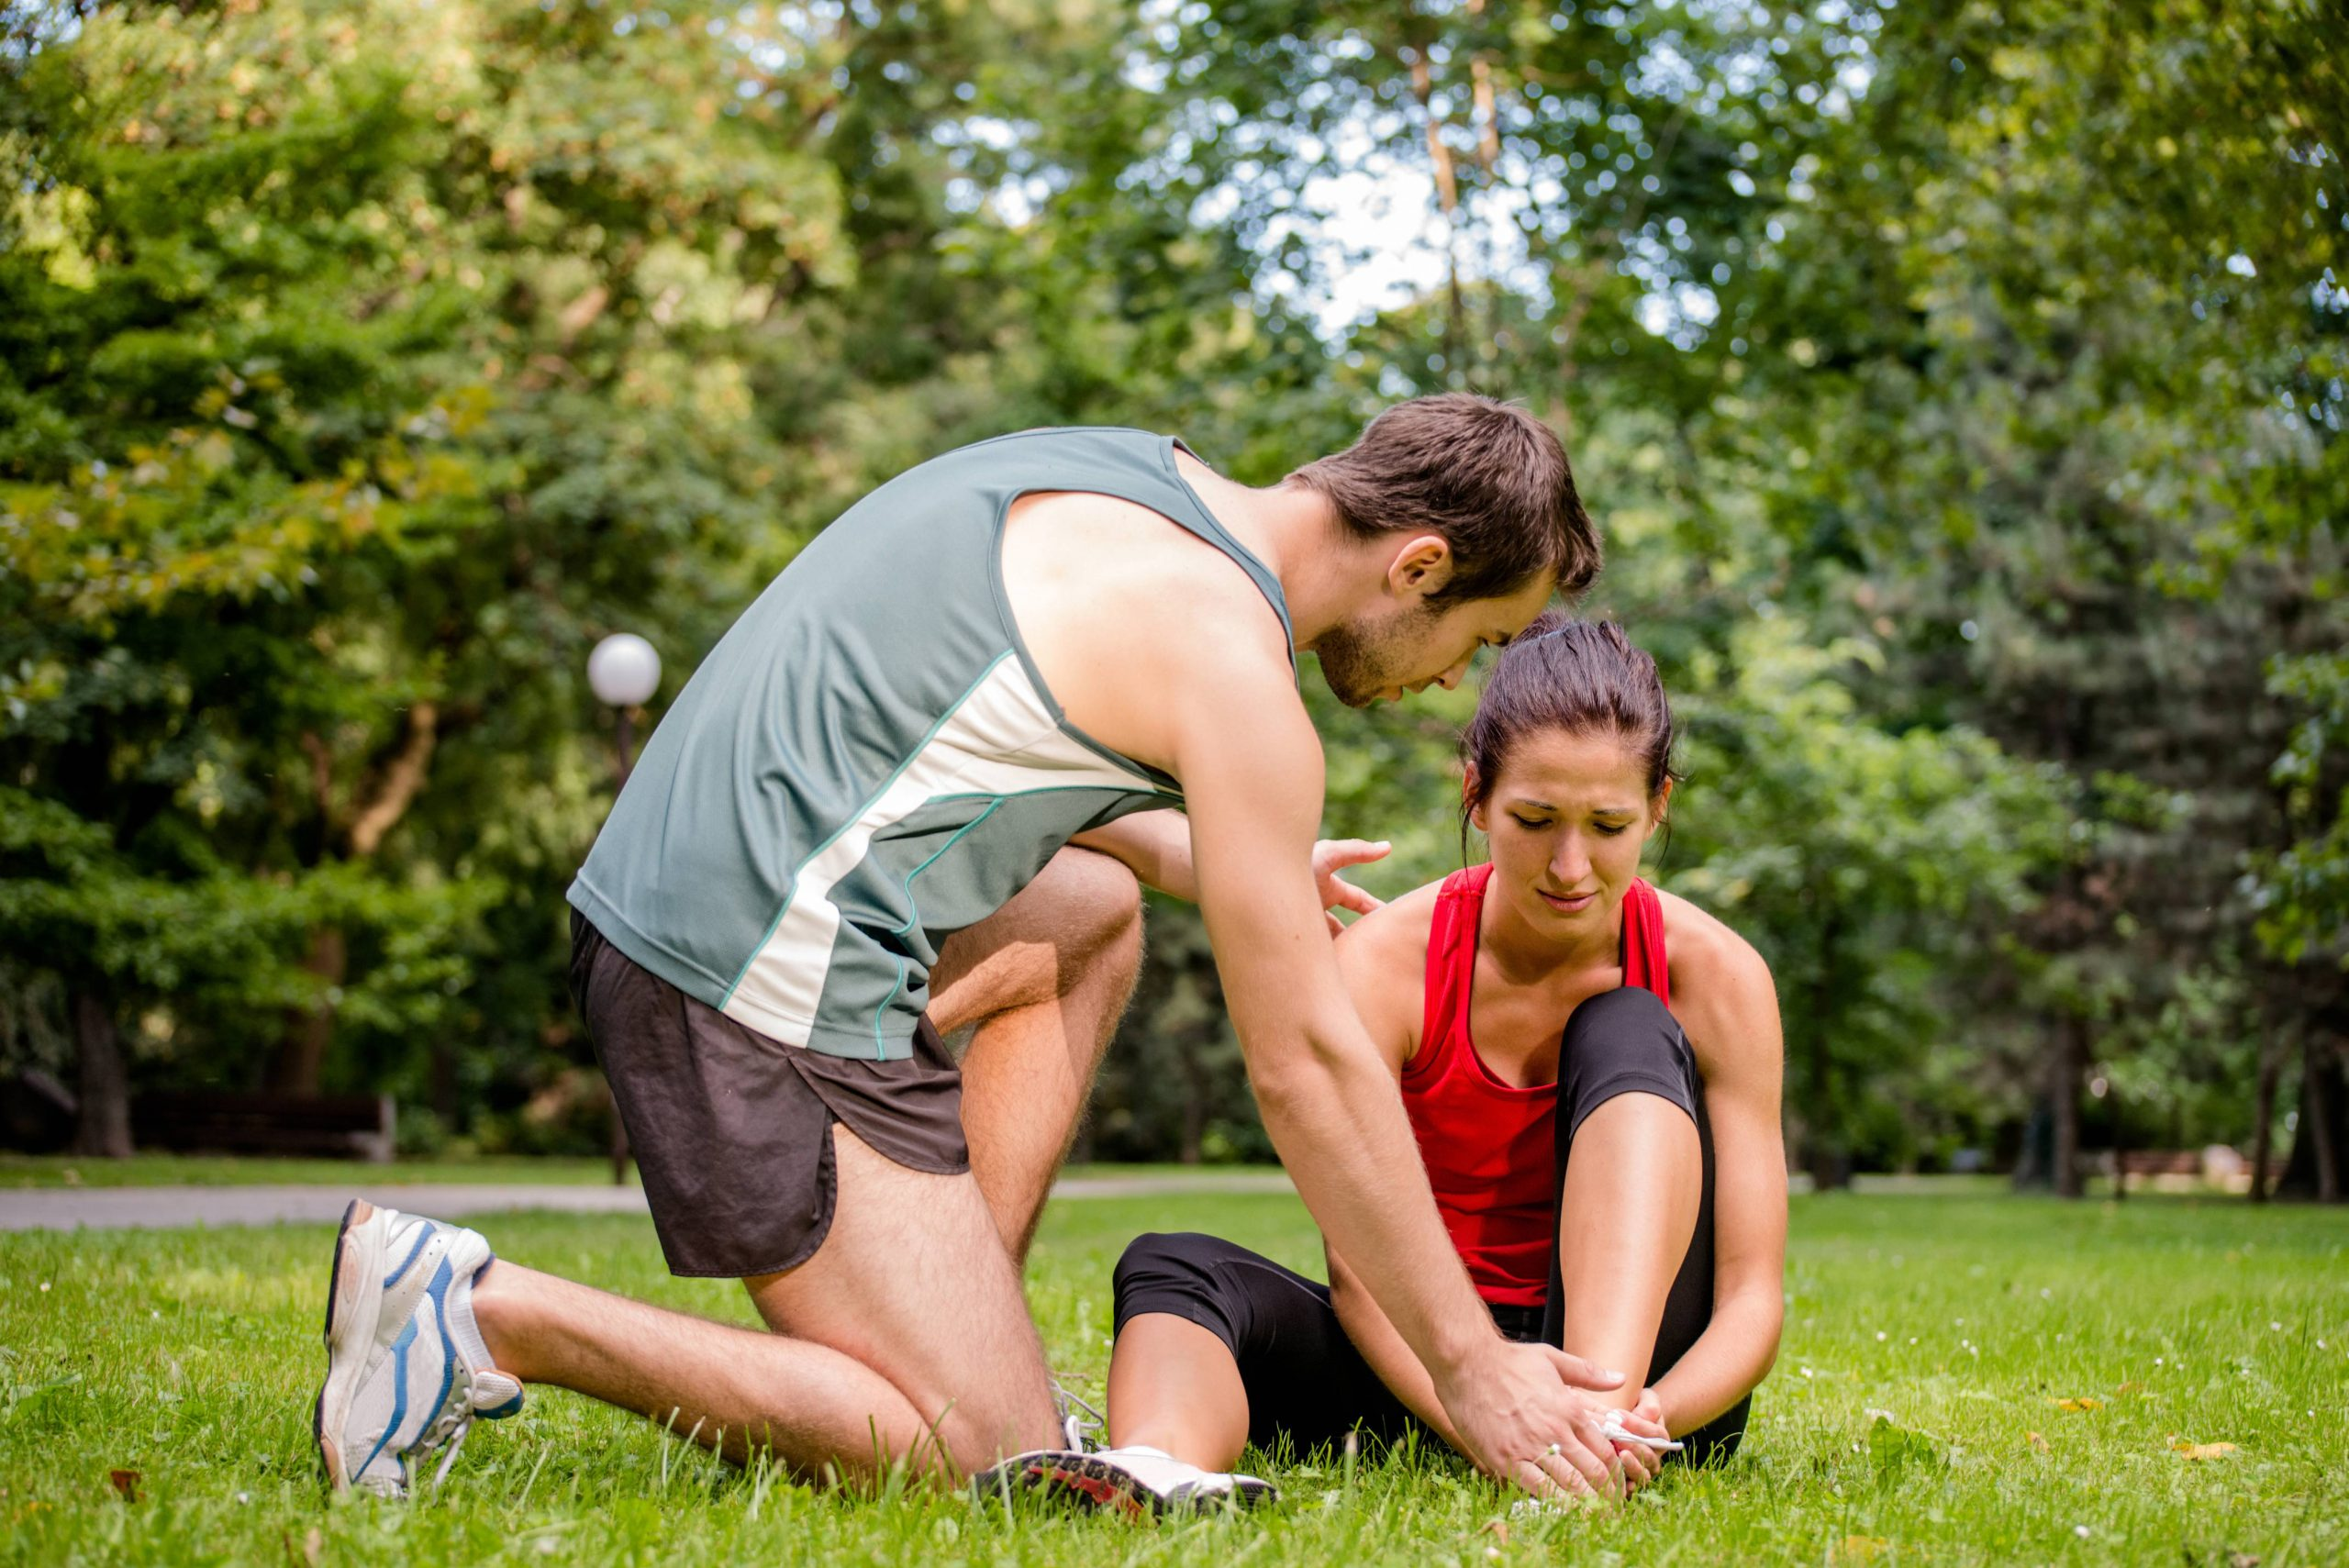 A wan helping a lady stting on the ground in the park who got injujred her ankle while exercising